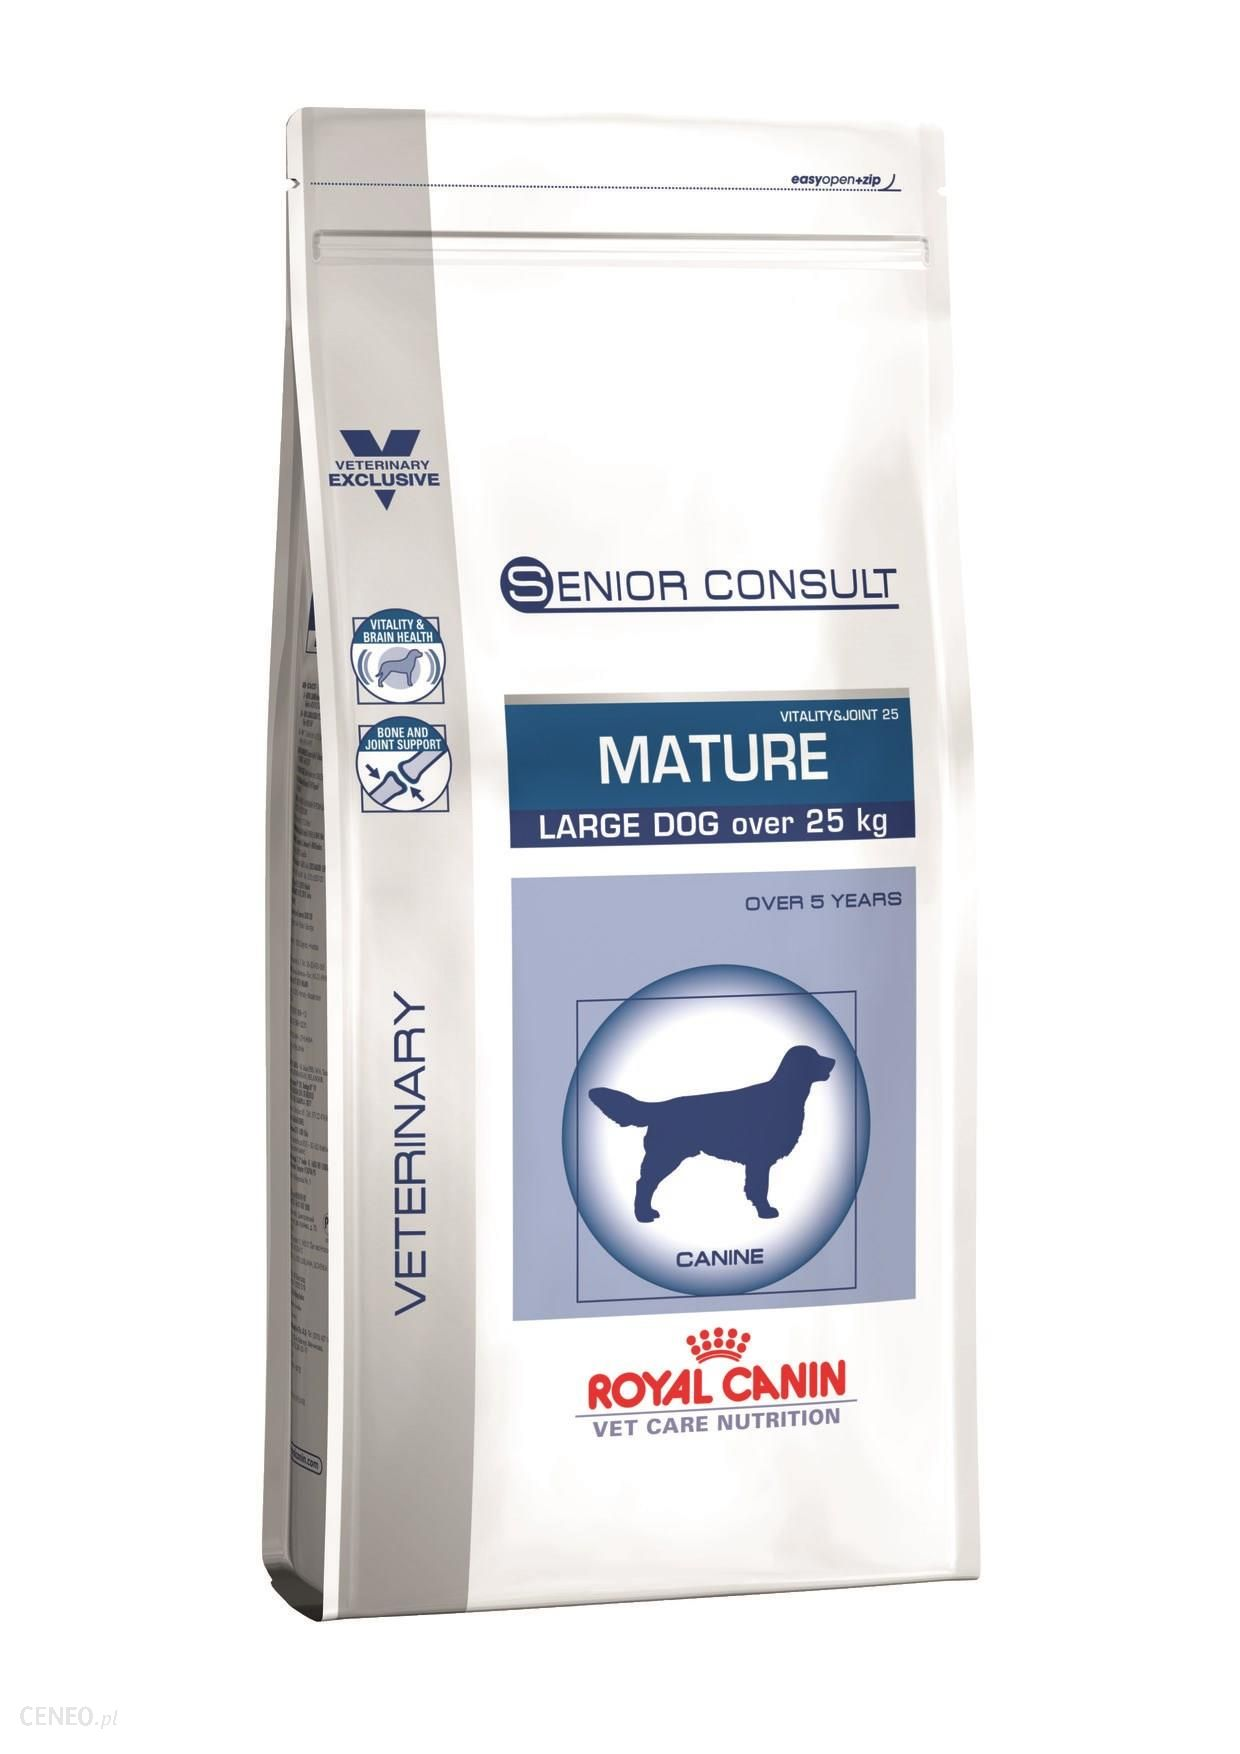 Royal Canin Veterinary Care Nutrition Senior Consult Mature Large Vitality&Joint 25 2x14kg